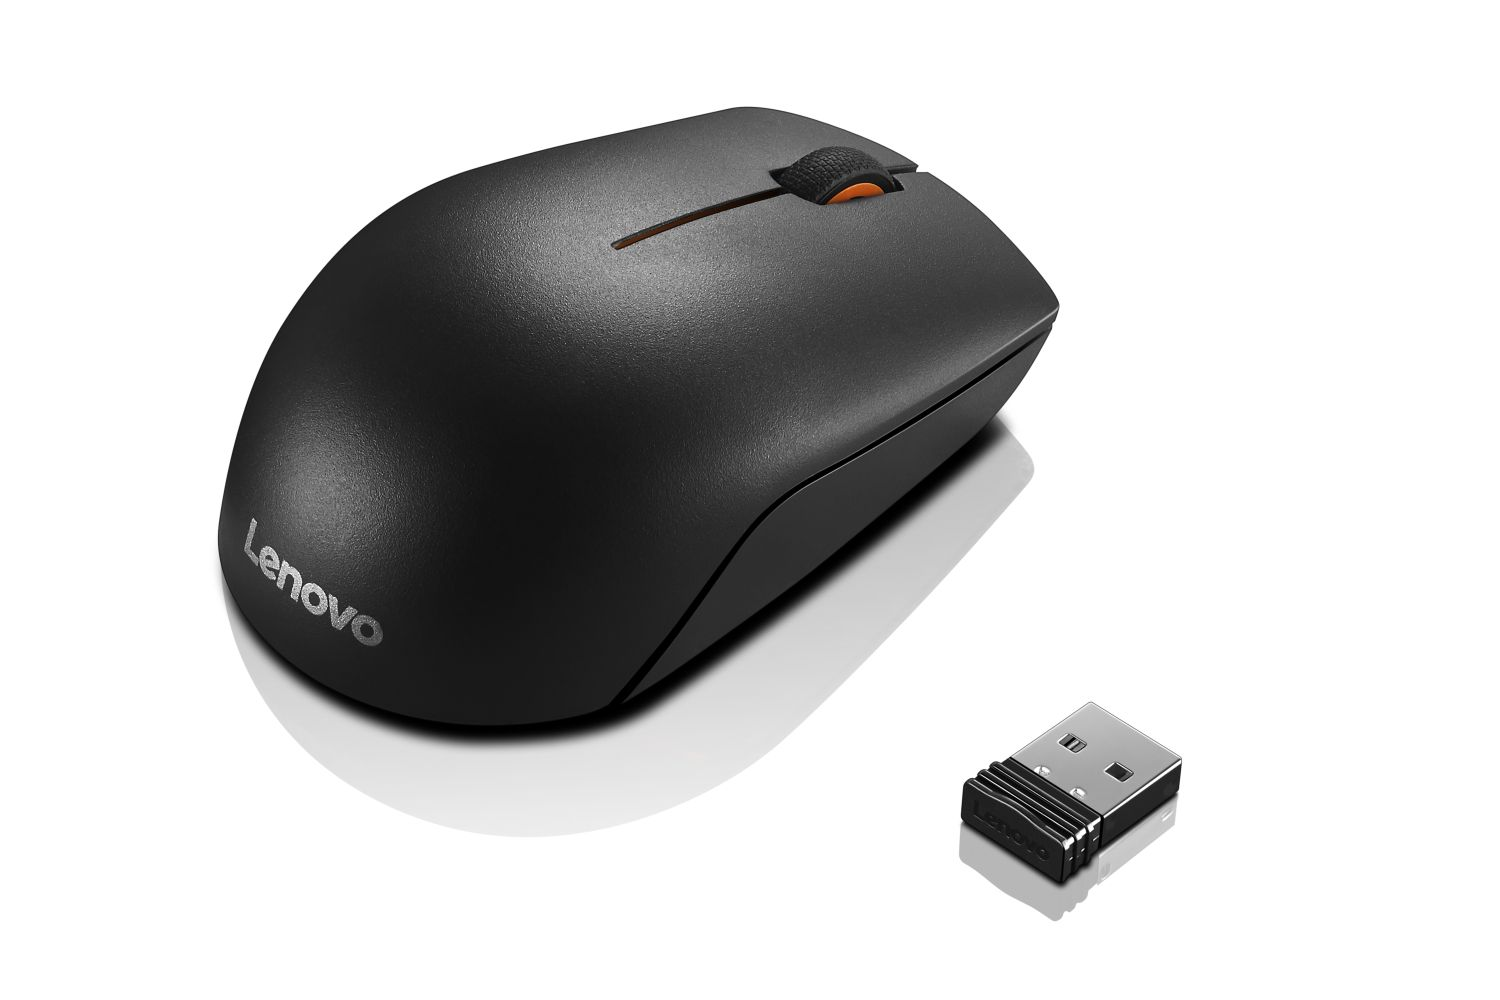 Lenovo Idea 300 Wireless Compact Mouse